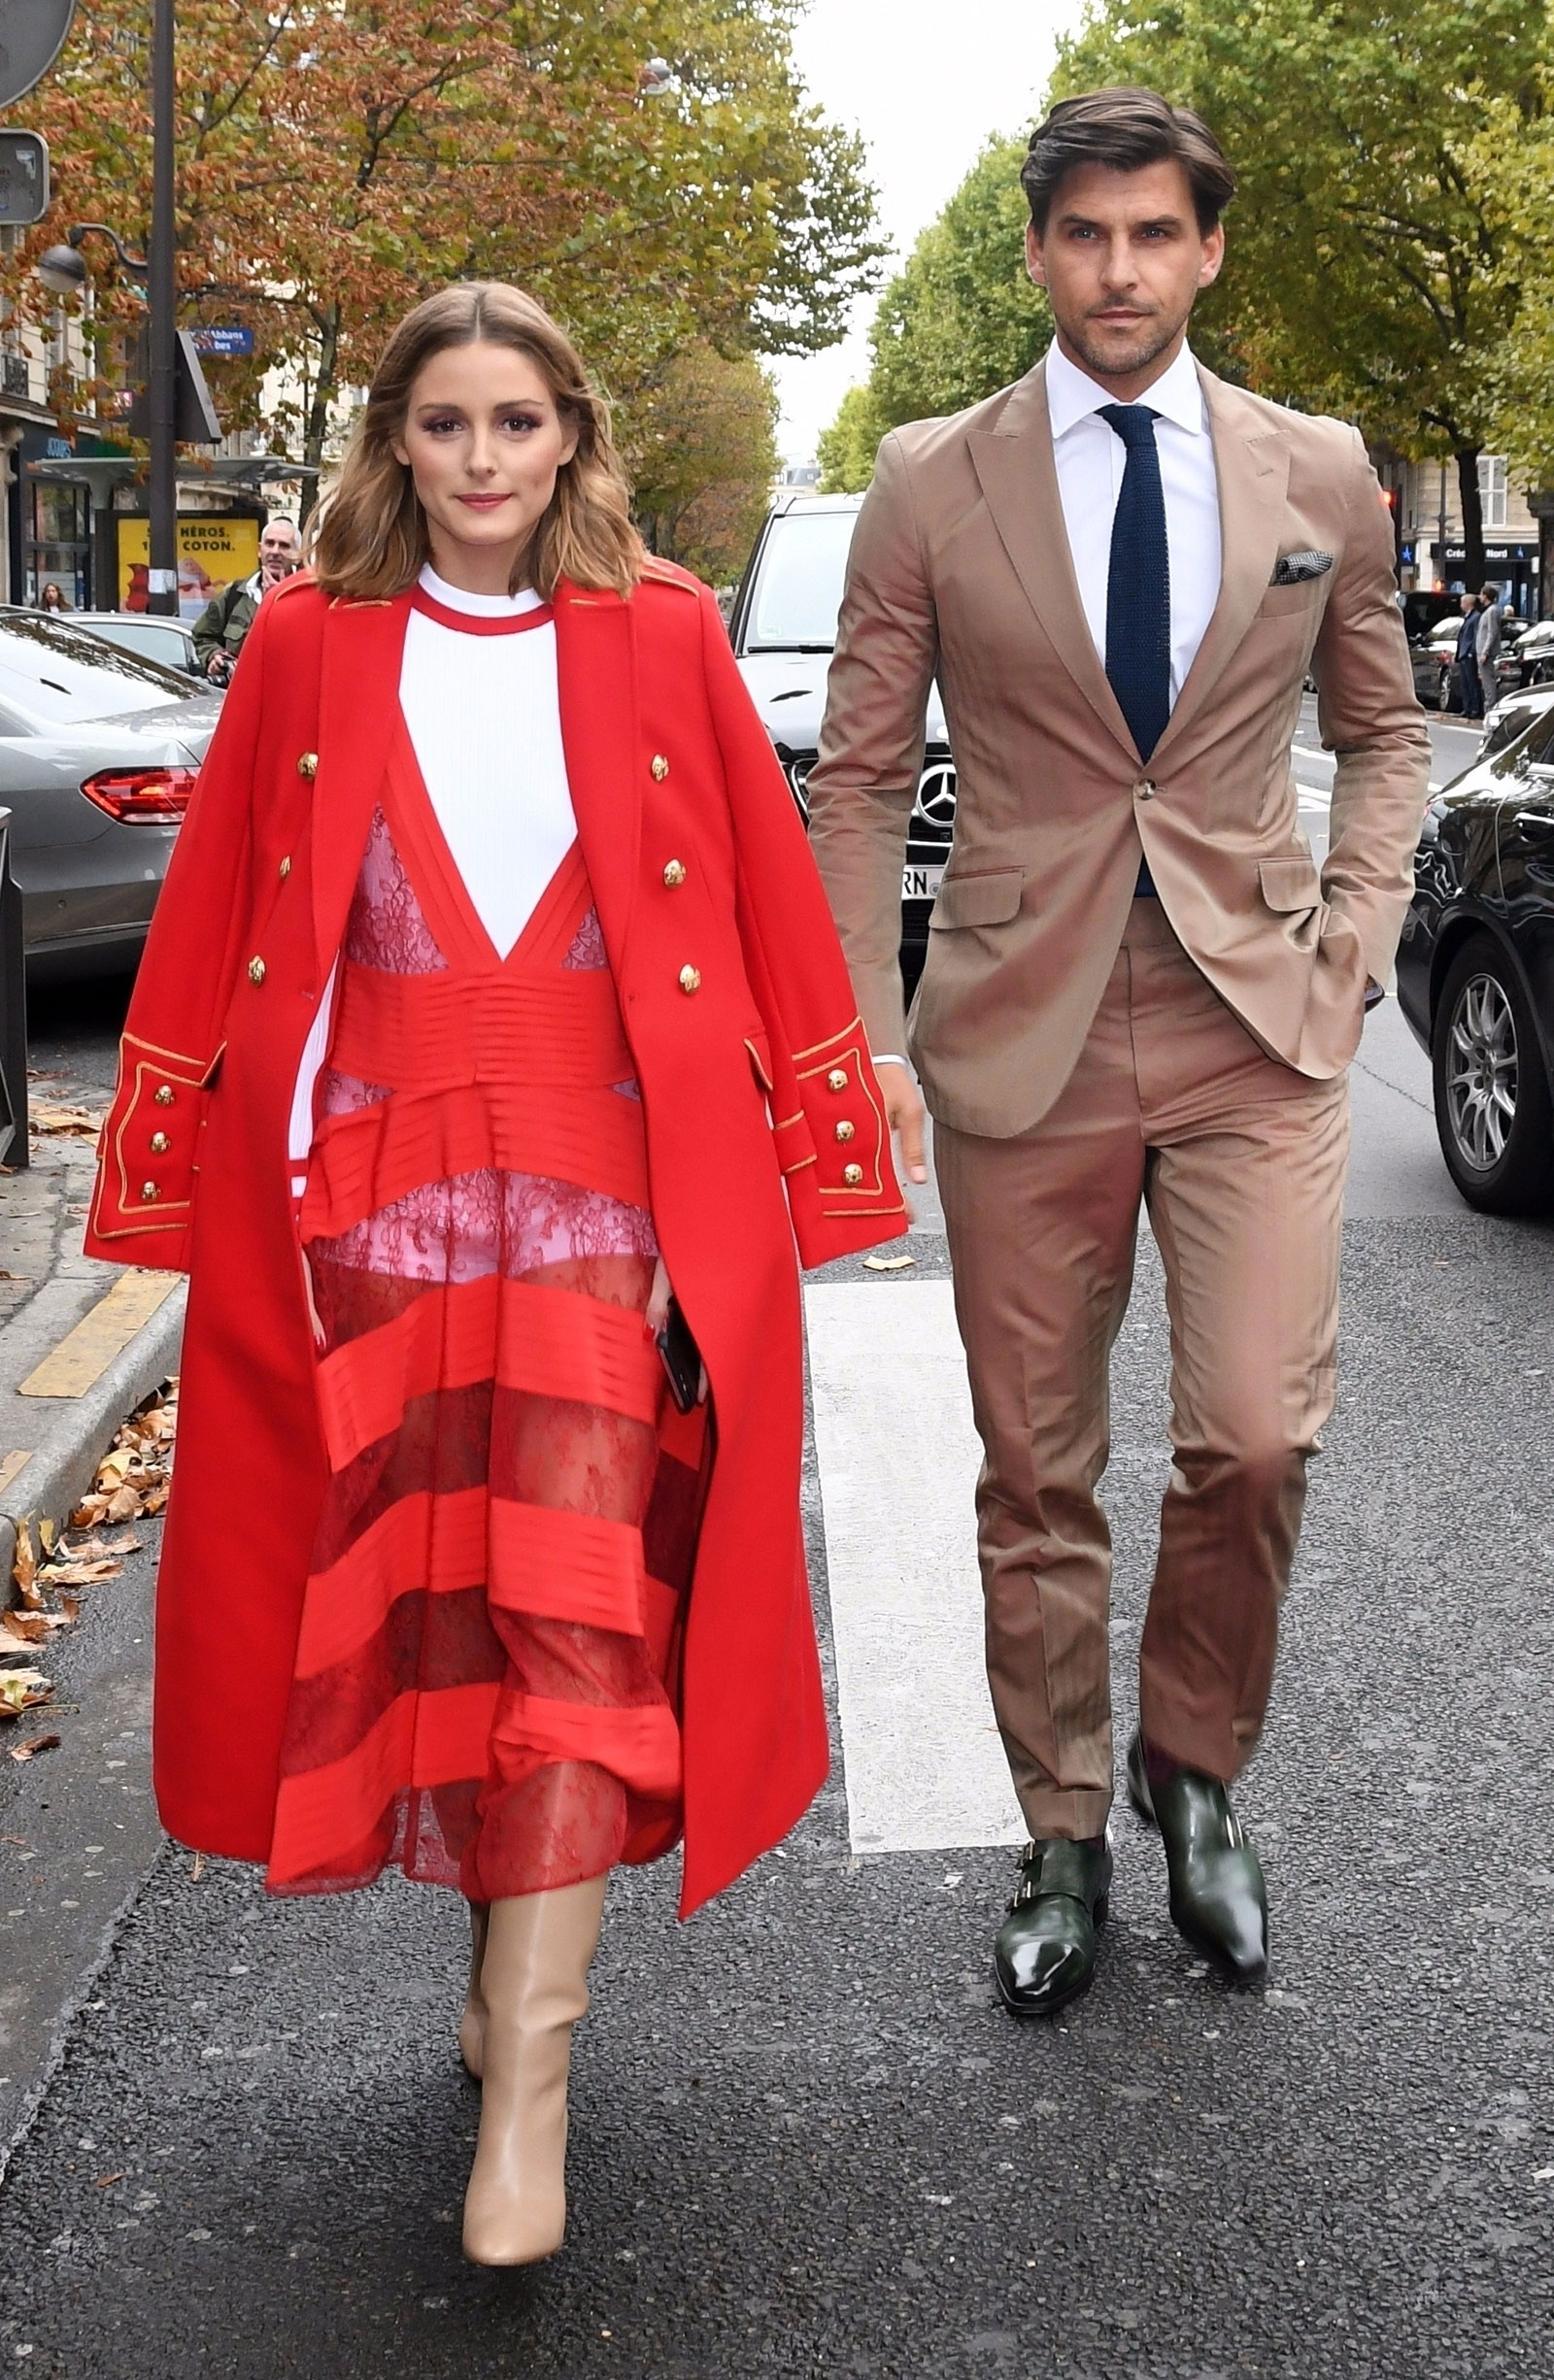 Olivia Palermo and husband Johannes Huebl are seen arriving at the Valentino fashion show in Paris during fashion week.